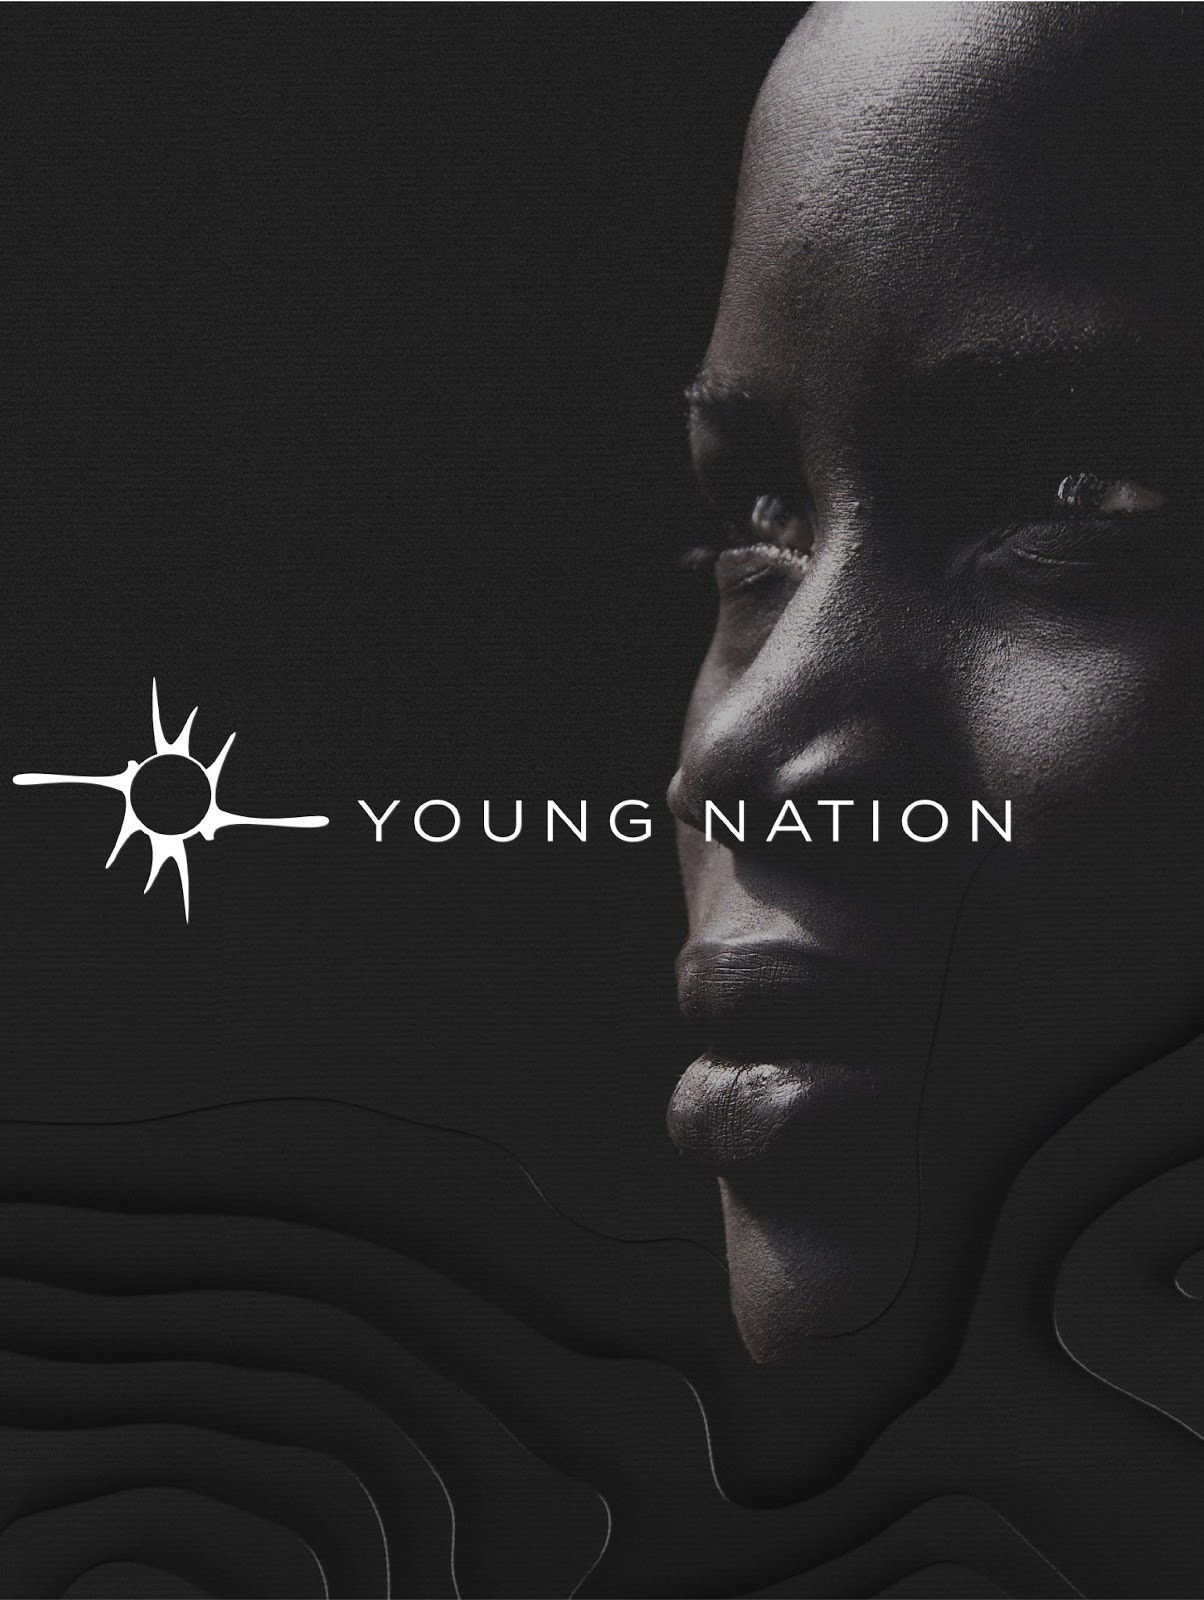 Young Nation design